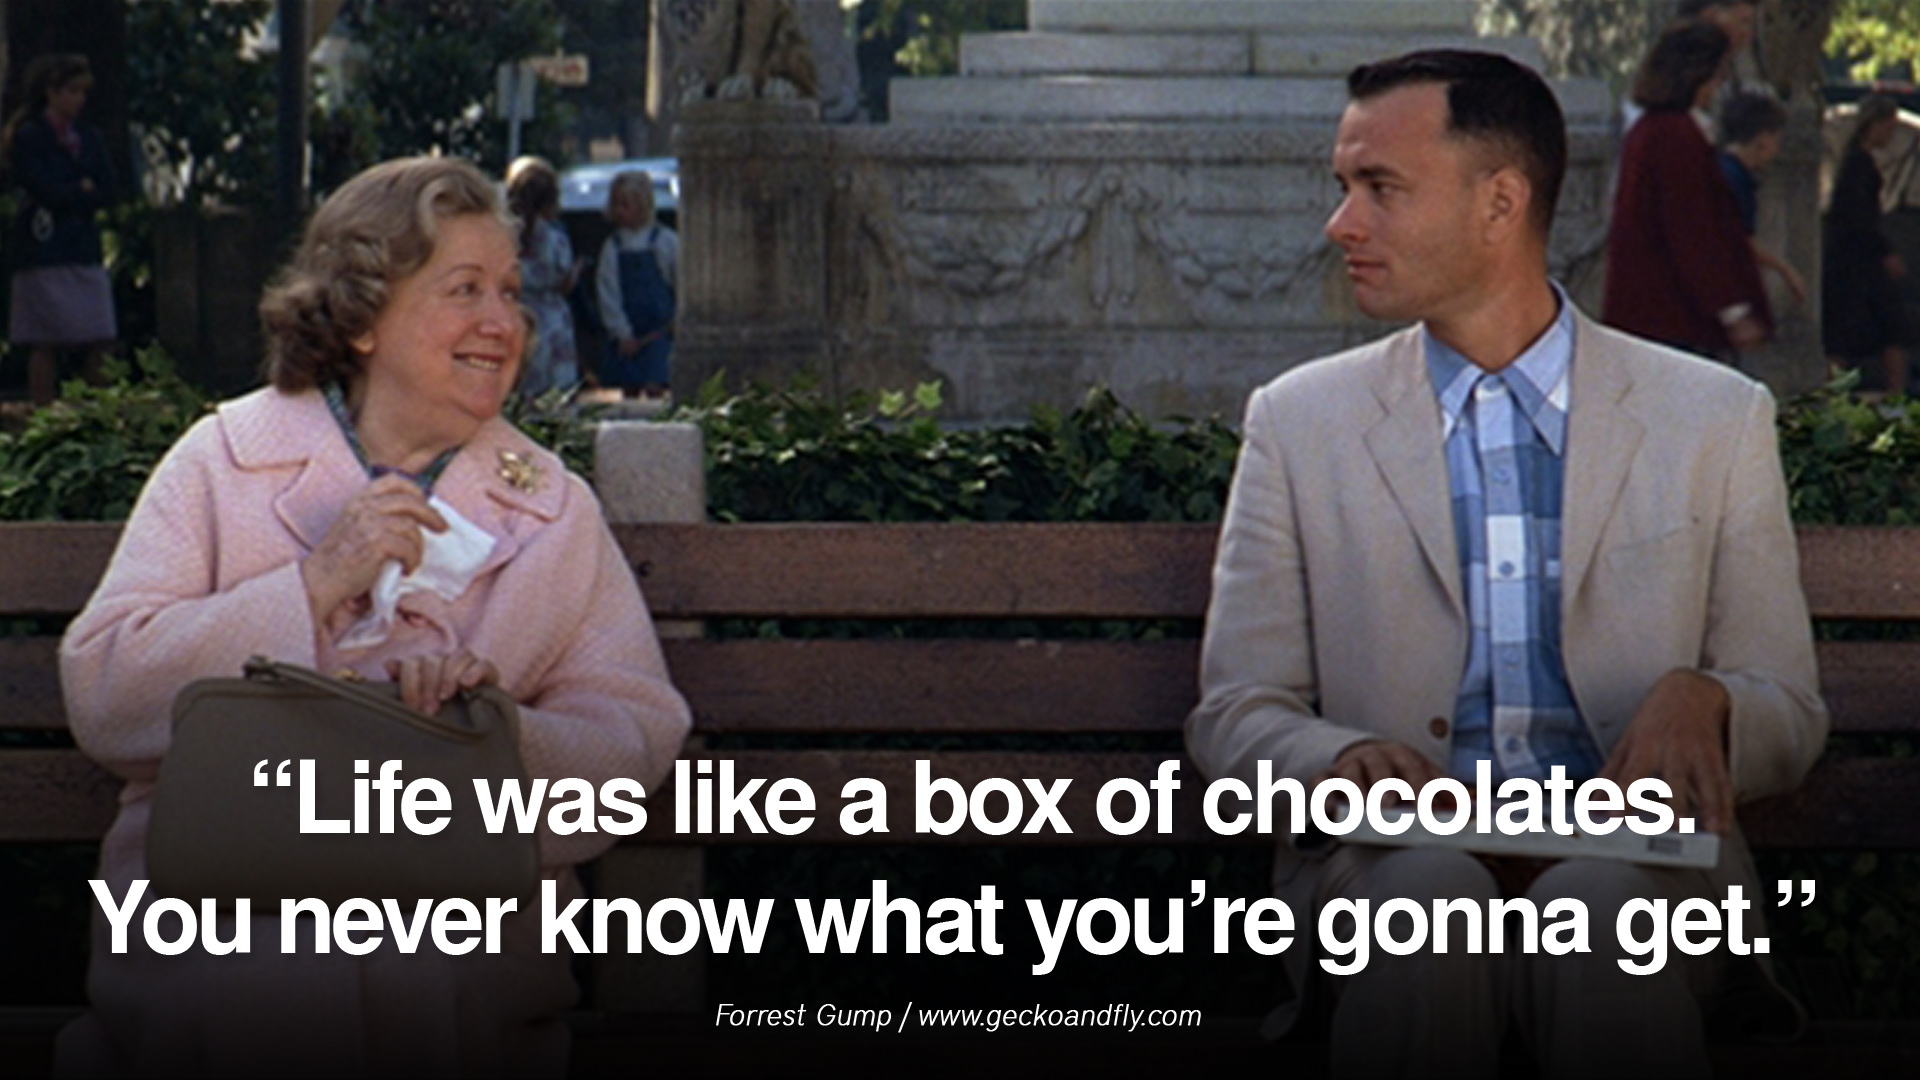 Forrest Gump Friend Quotes. QuotesGram